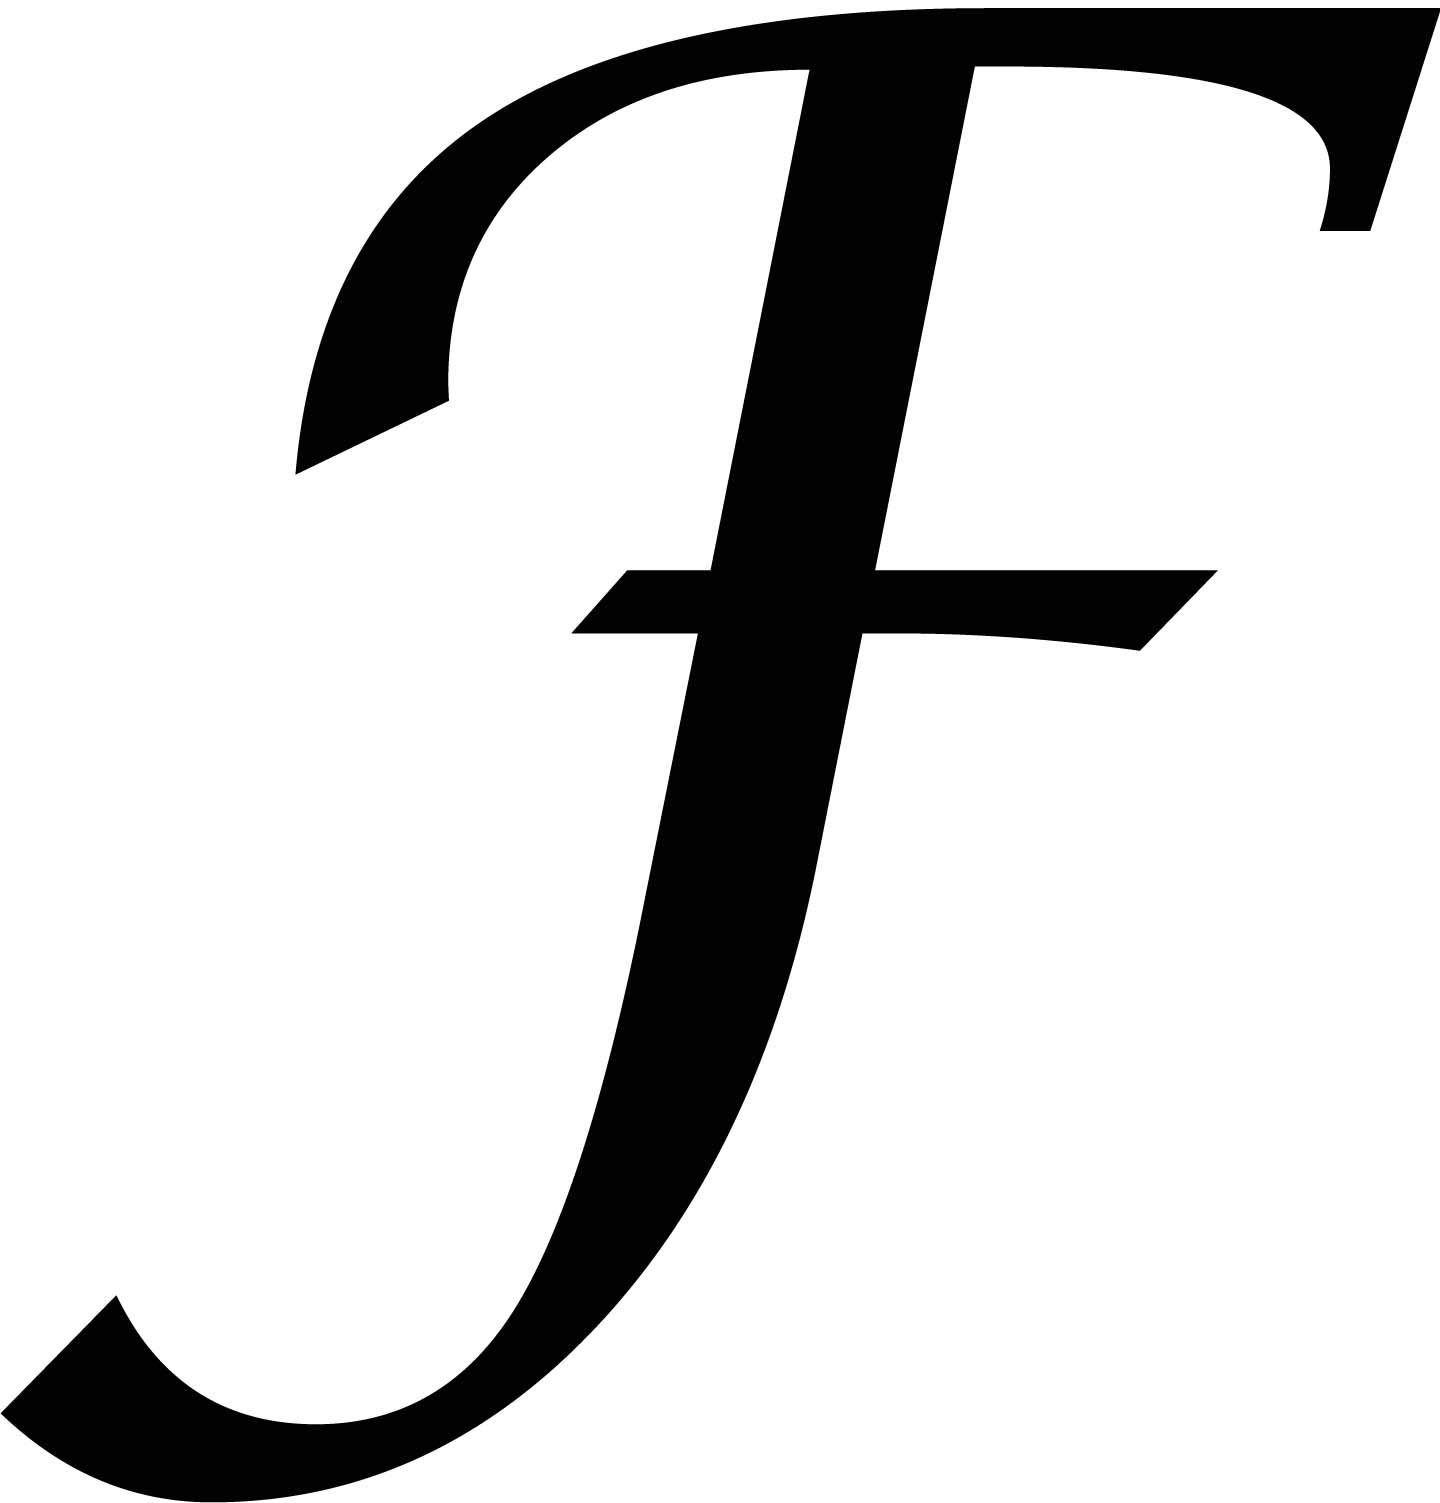 F Created A Letter F Template And Printed It Out If You Want One